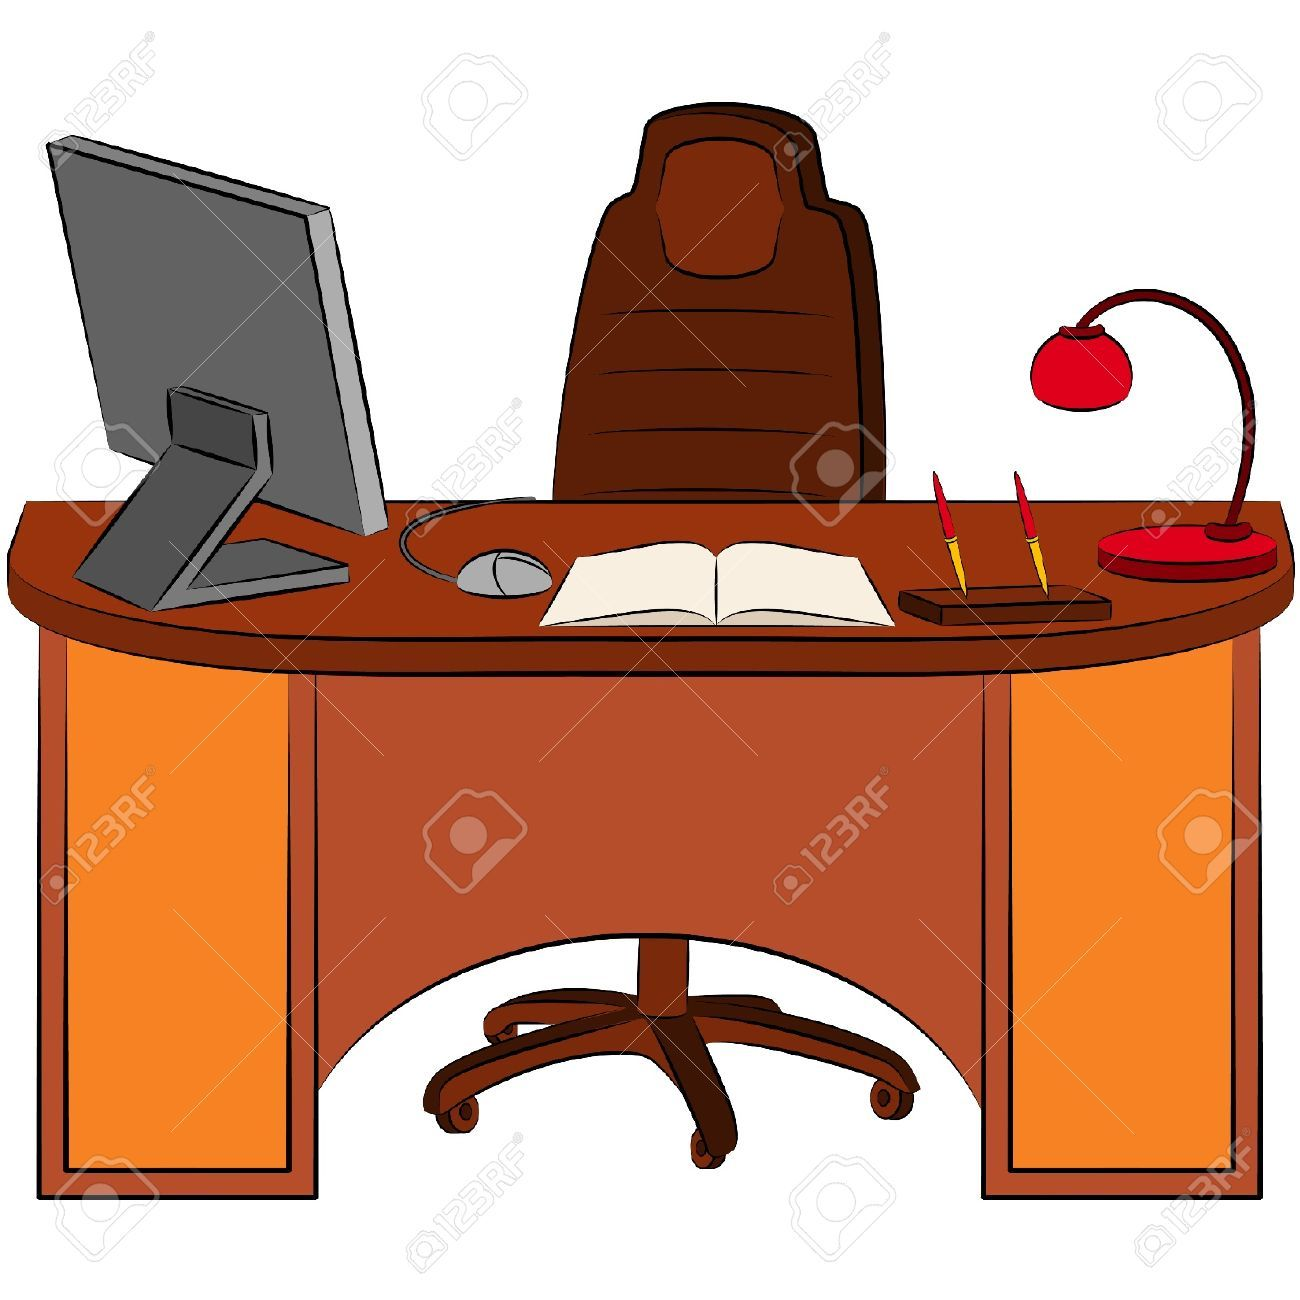 Office clipart free download clipart library download Office Desk Clipart | Free download best Office Desk Clipart on ... clipart library download